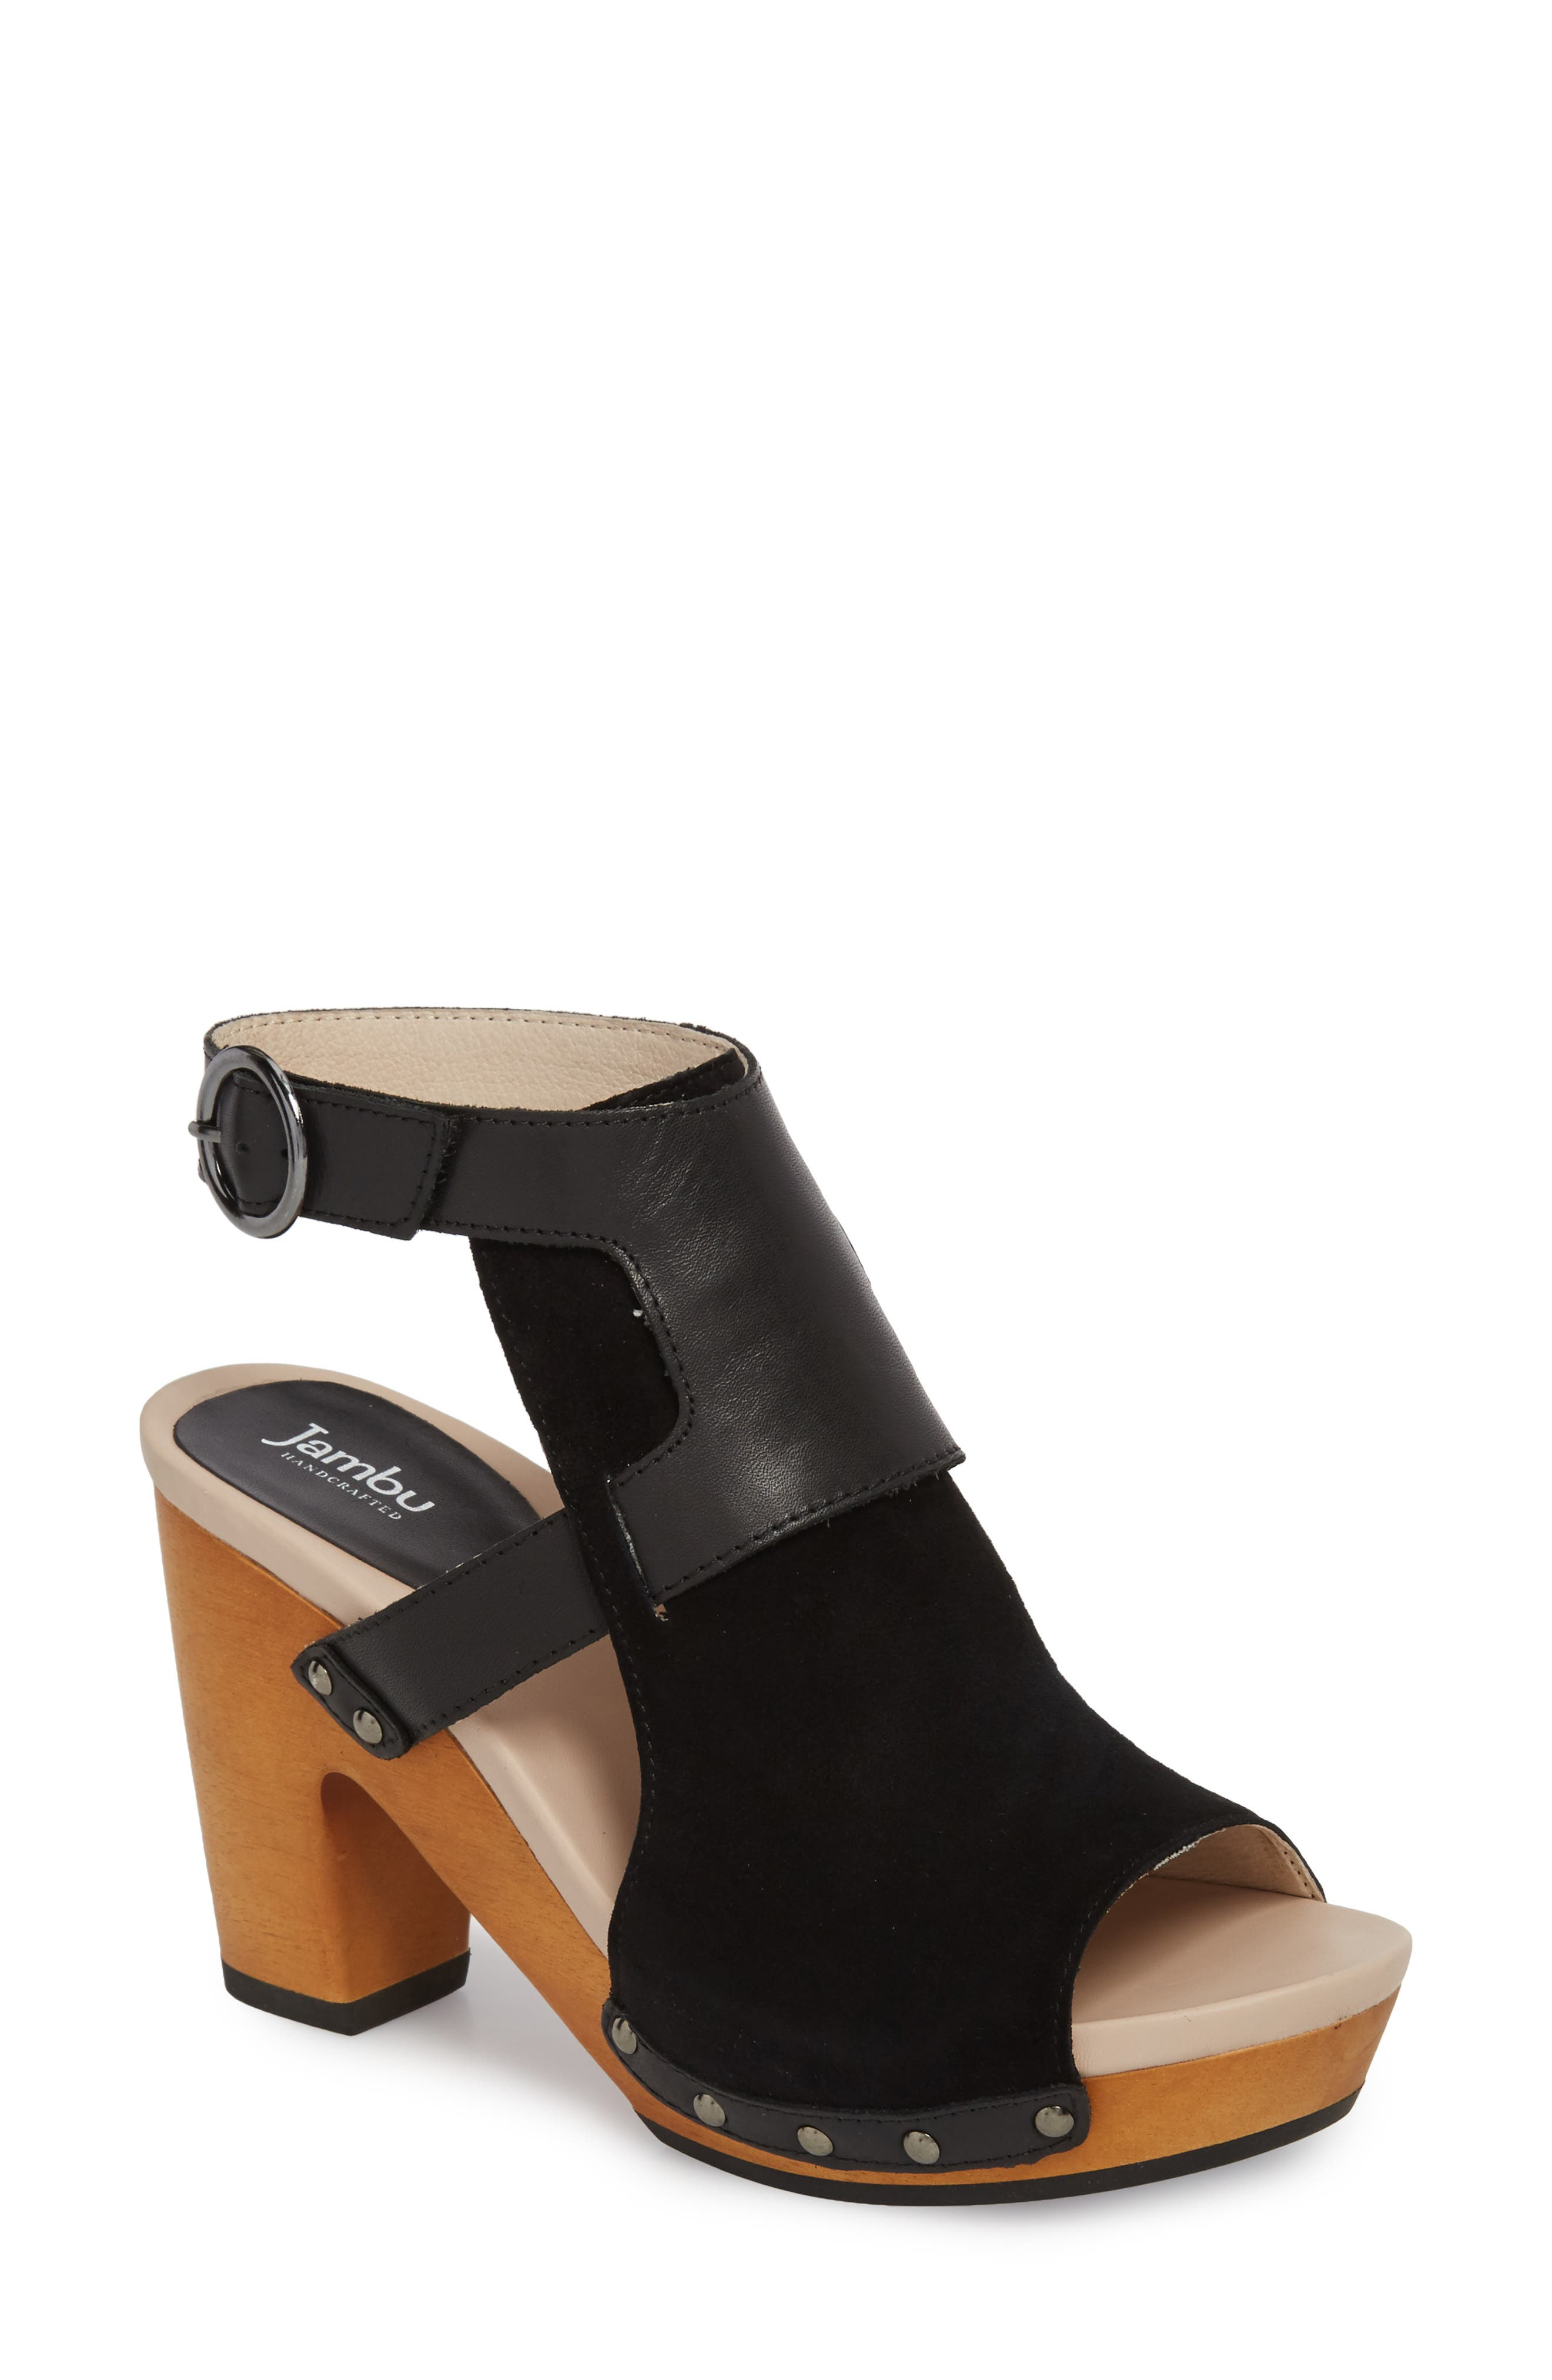 Alternate Image 1 Selected - Jambu Gina Platform Sandal (Women)